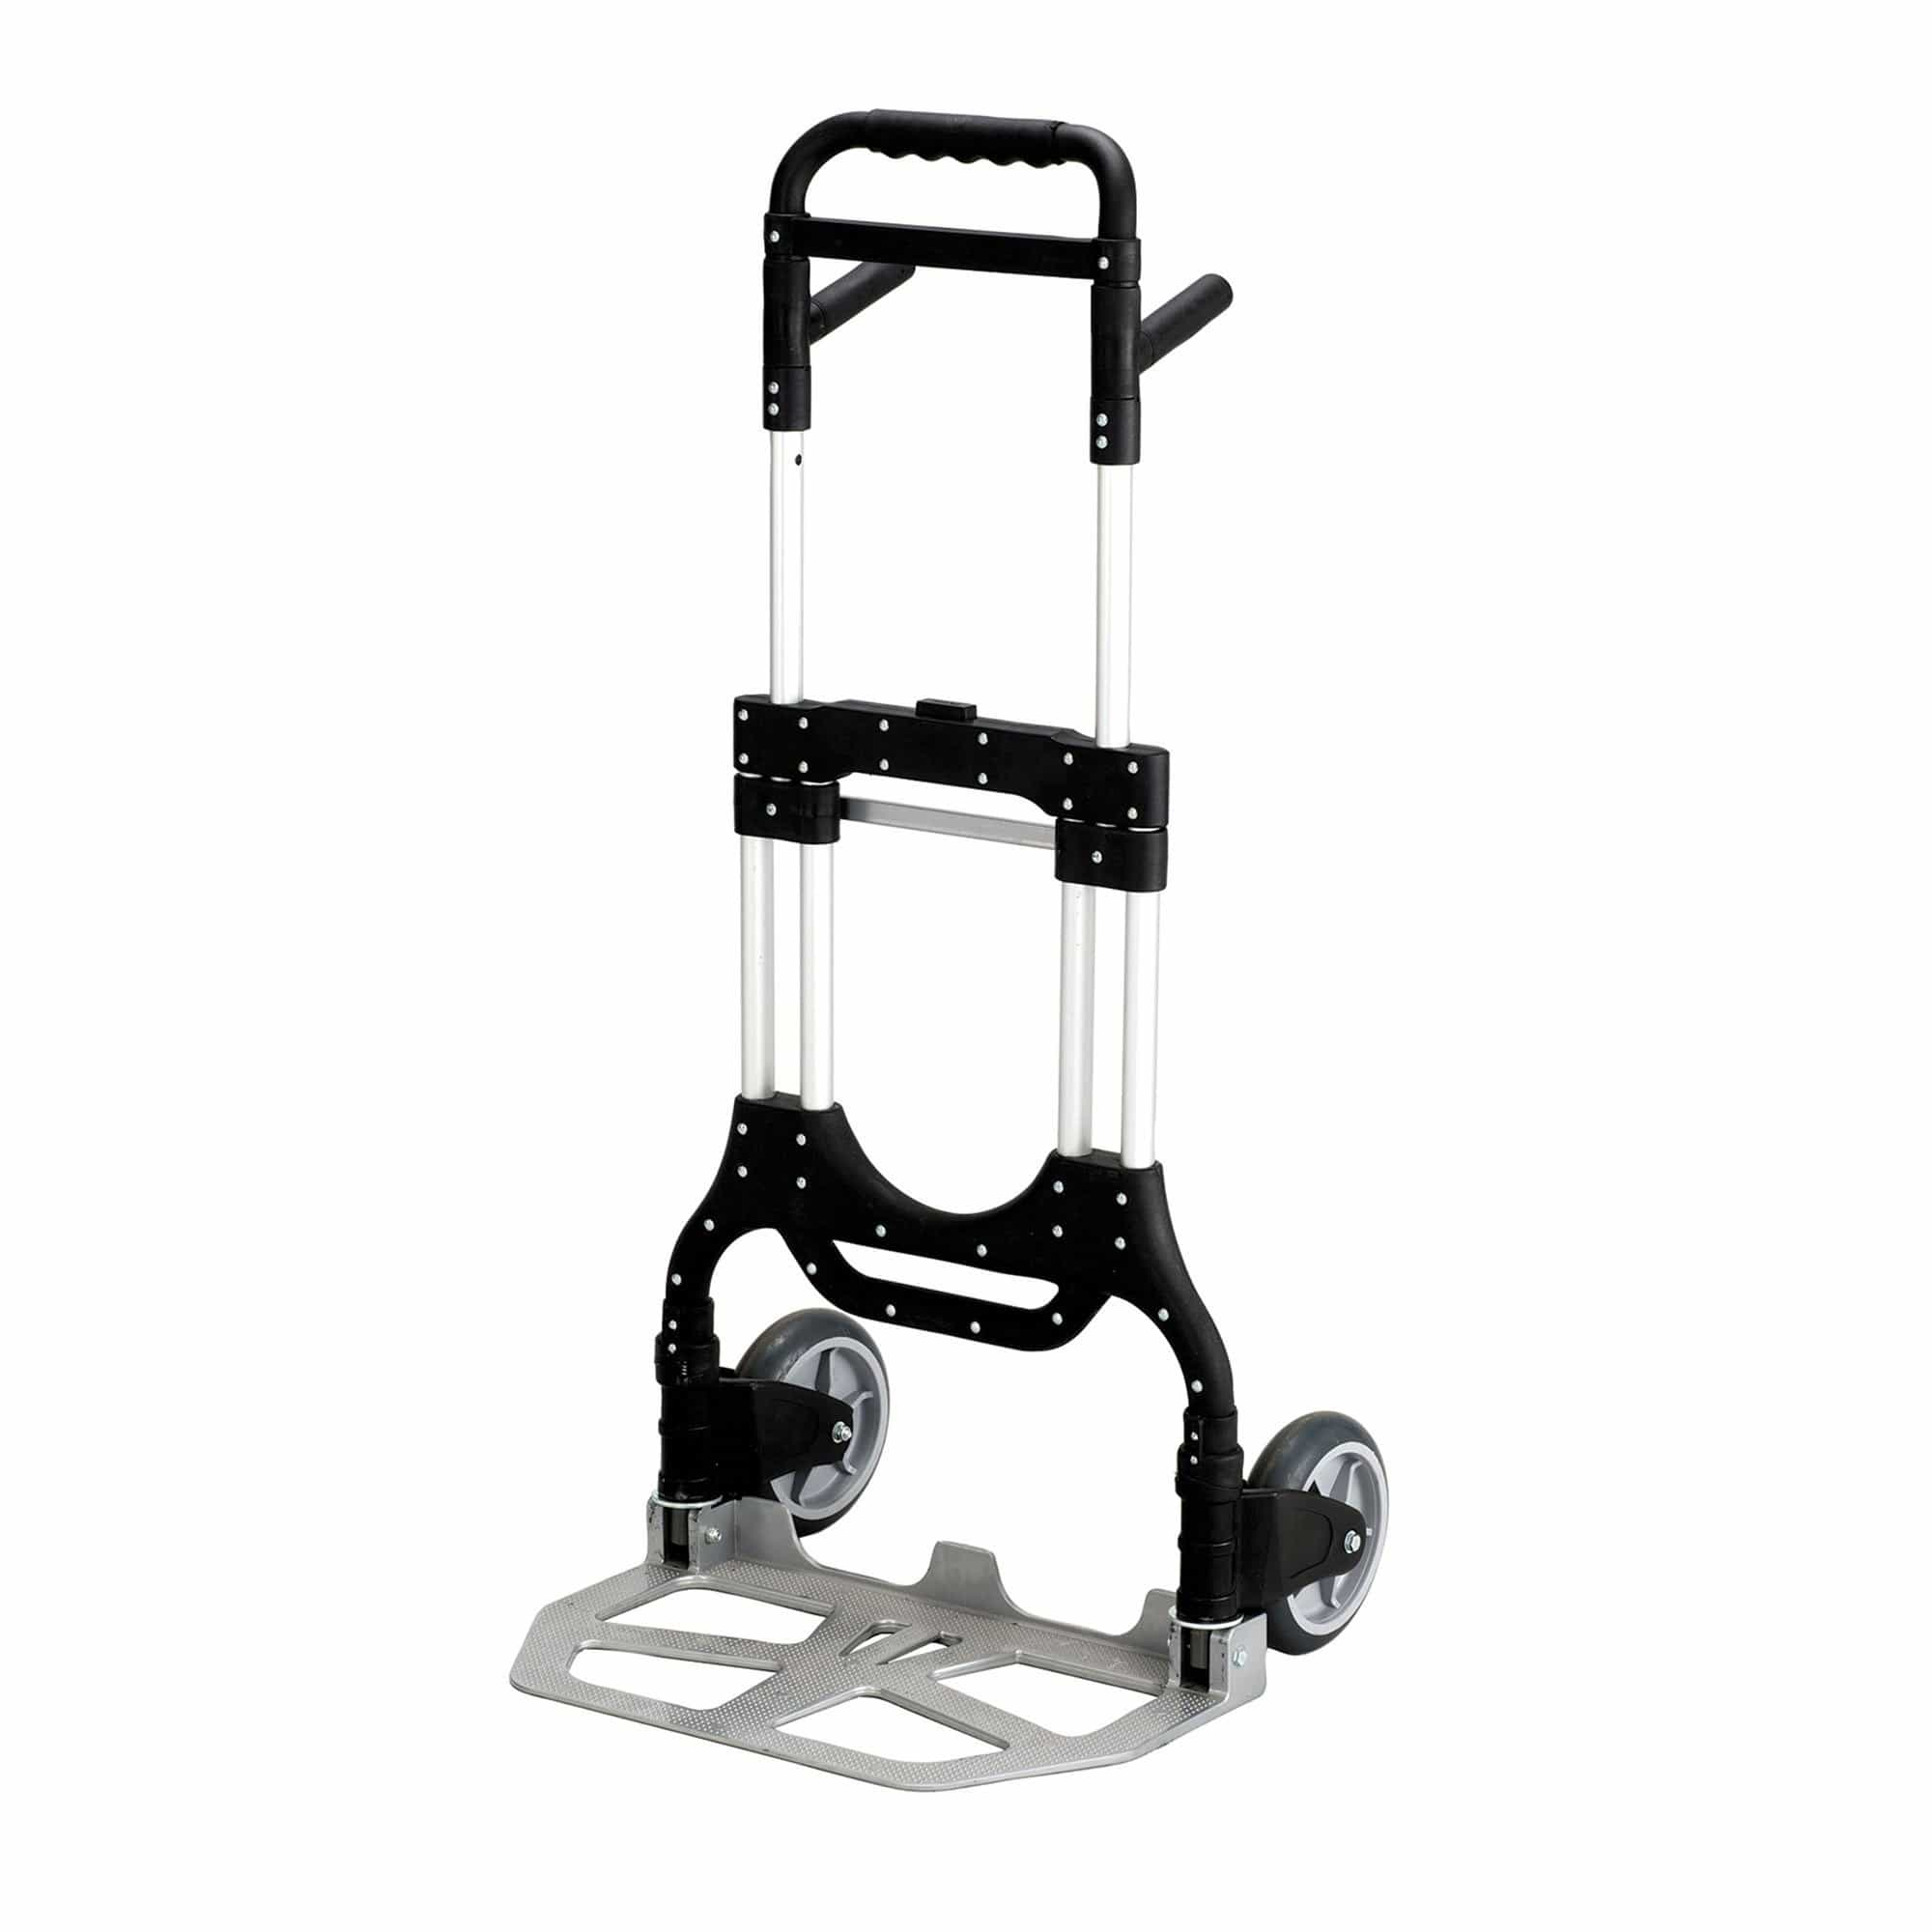 bedinhome - 4055NC STOW AWAY Heavy Duty black lightweight aluminum frame folding dolly Hand Truck - Safco - Folding Hand Trucks